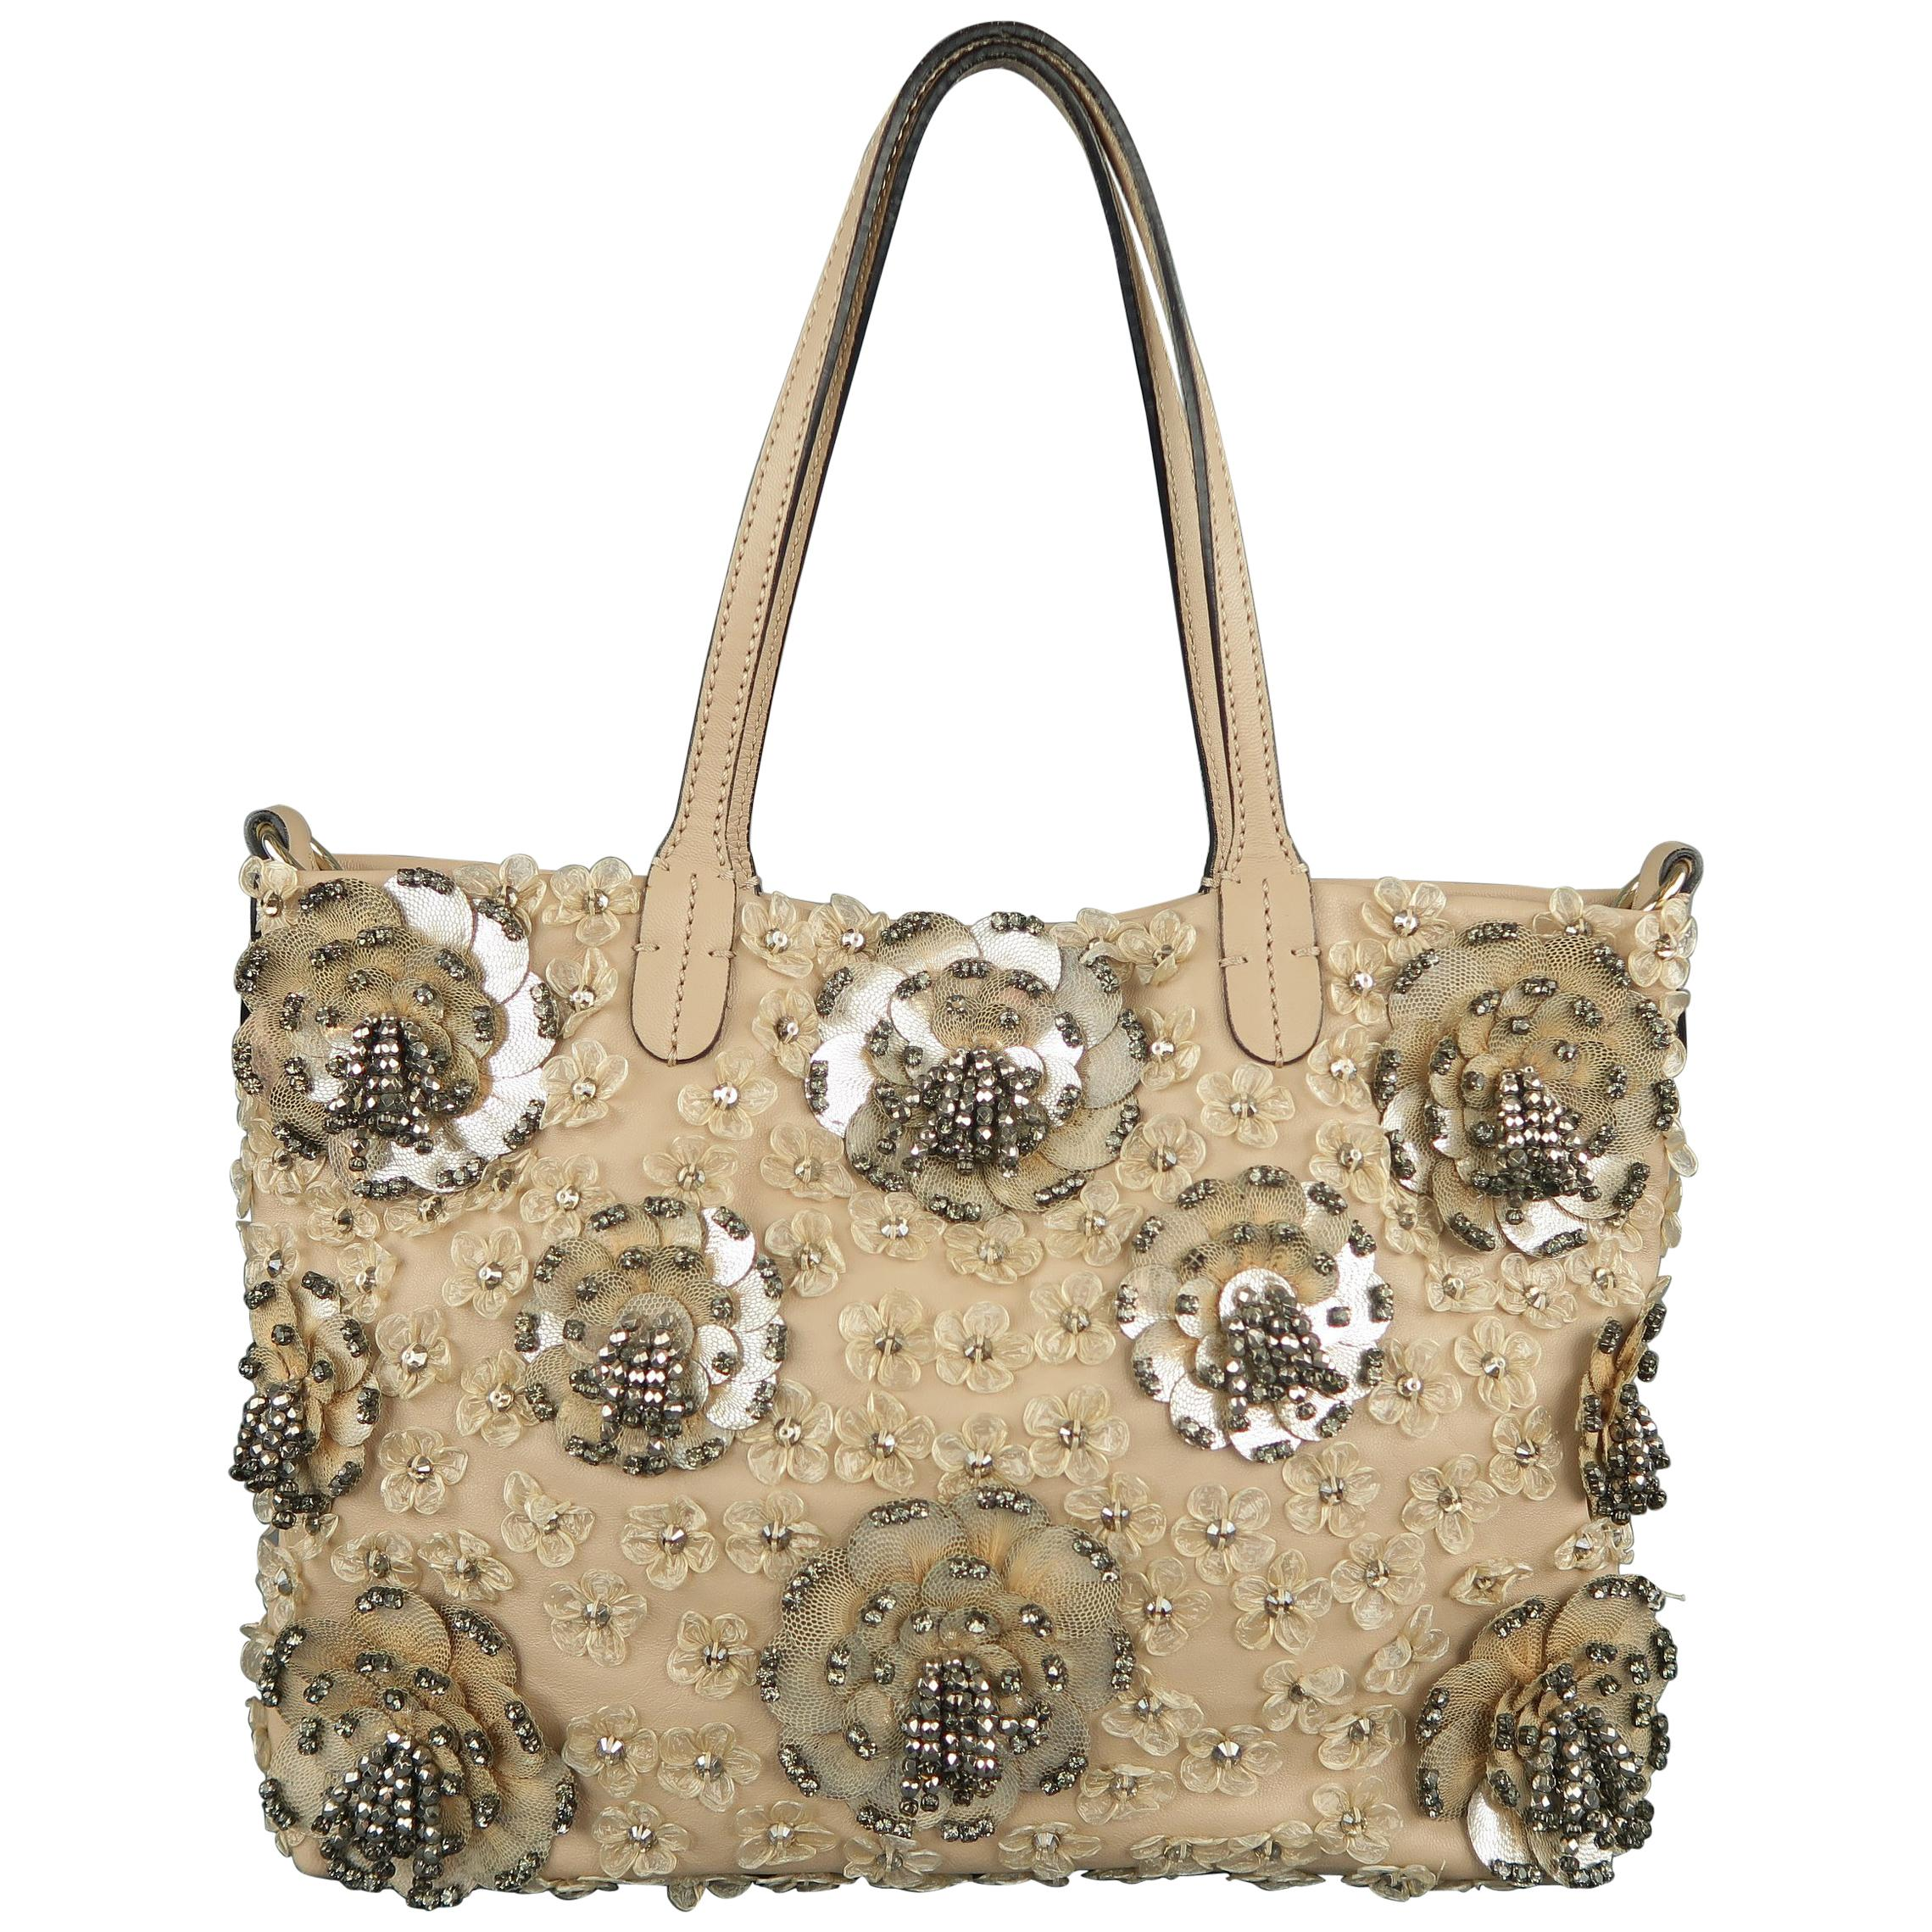 c9cabf325 VALENTINO Muted Pink Leather Beaded Rhinestone Payette Flower Tote Bag For  Sale at 1stdibs